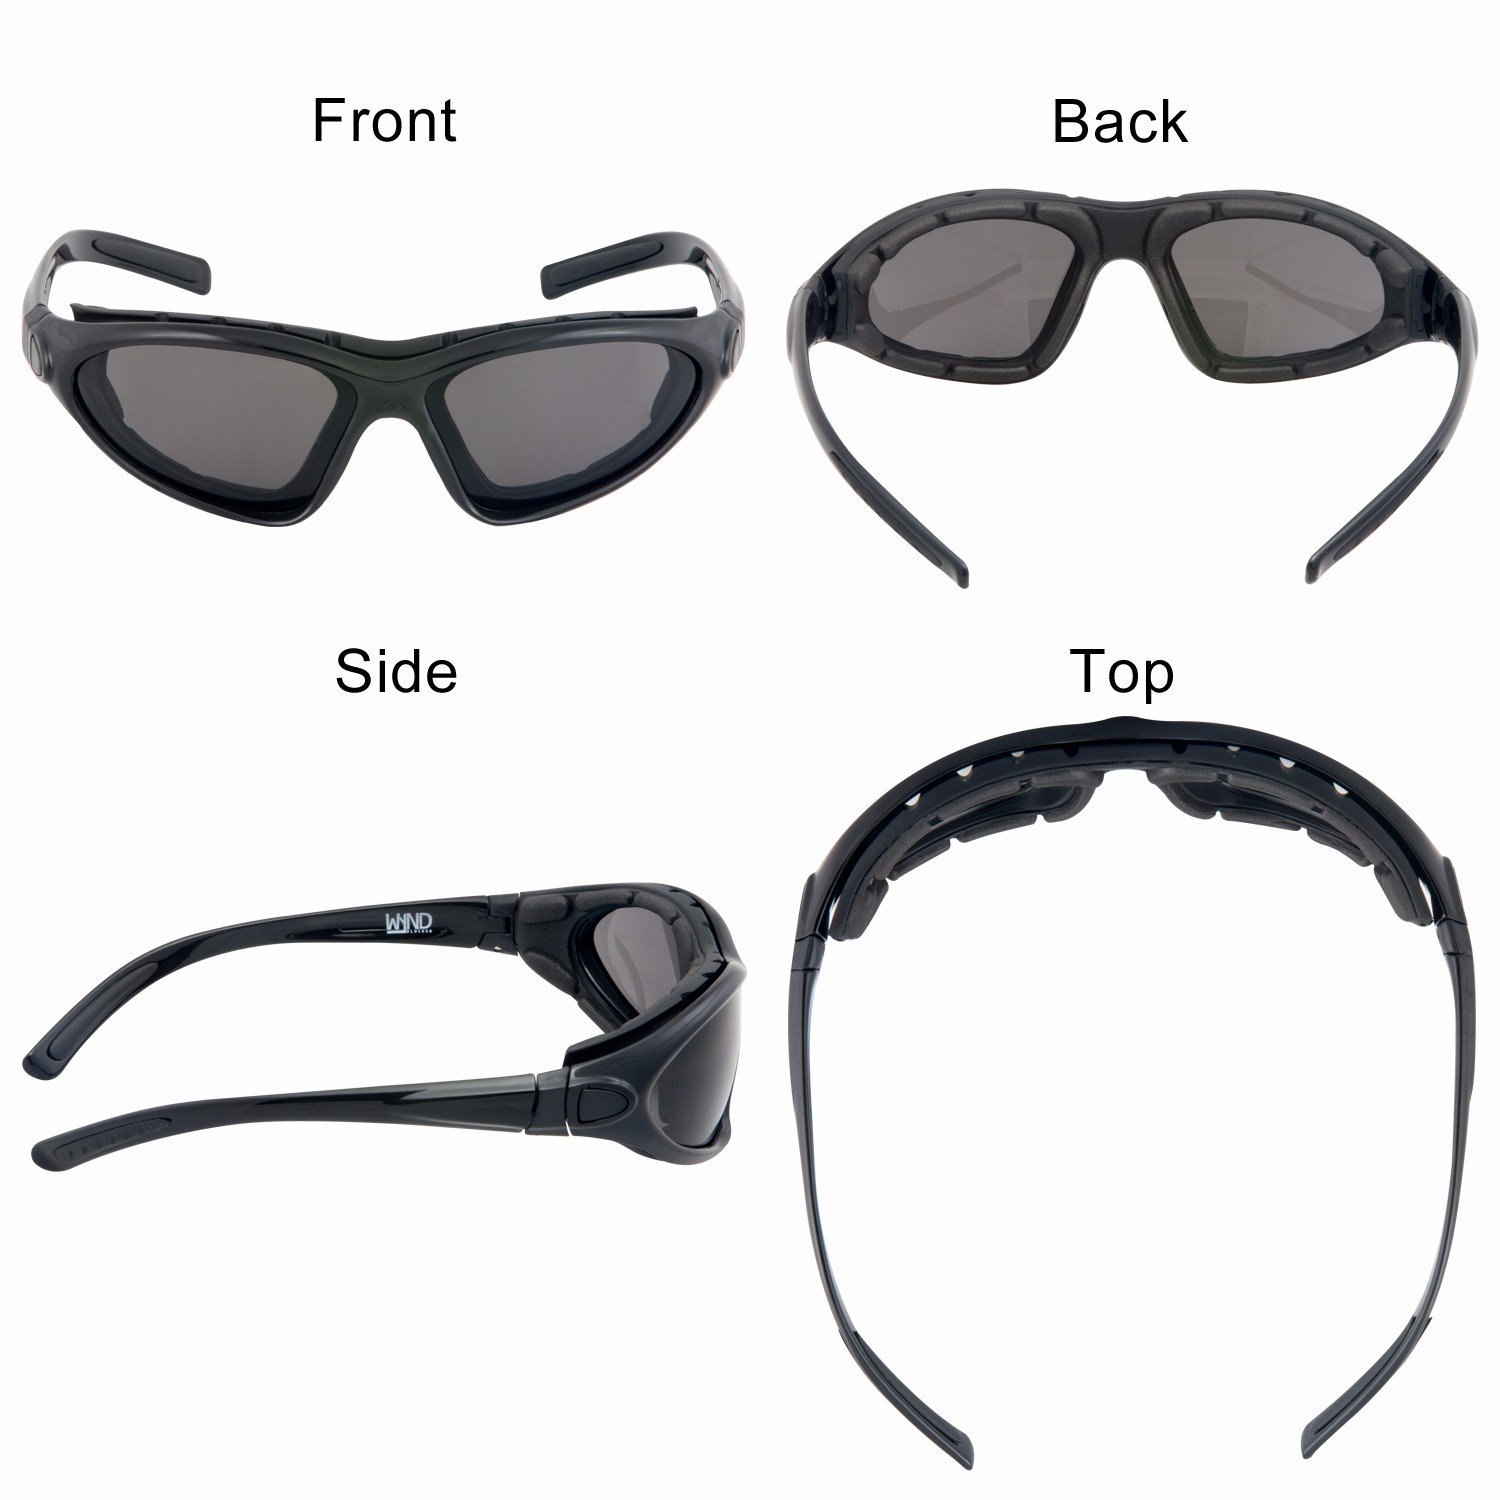 b4a5c34a8f2 WYND Blocker Vert Motorcycle   Boating Sports Wrap Around Polarized  Sunglasses (Black   Smoke Lens)  Amazon.in  Clothing   Accessories